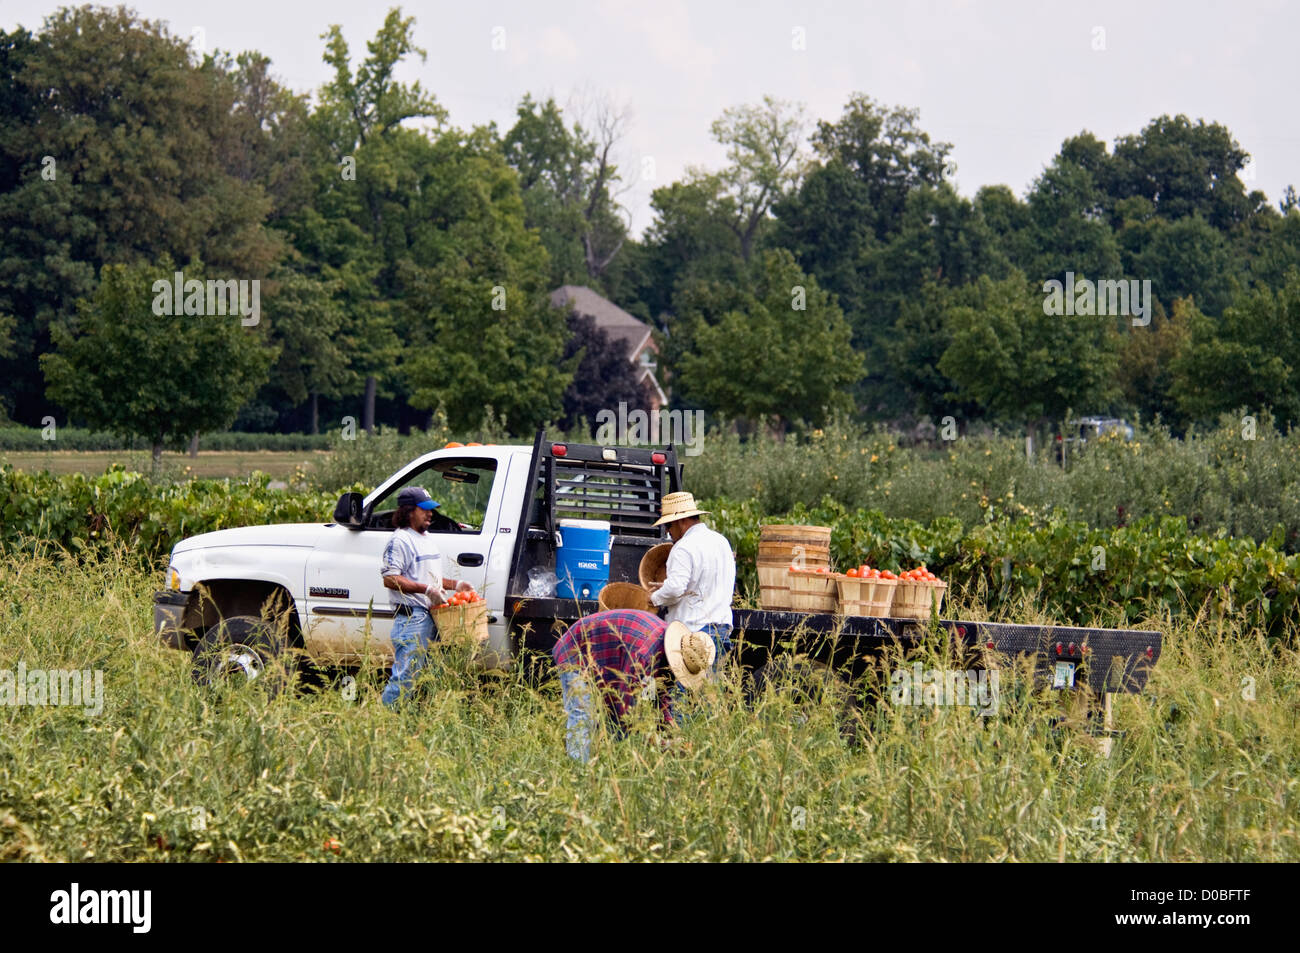 Workers Harvesting Tomatoes on Farm in Starlight, Indiana - Stock Image